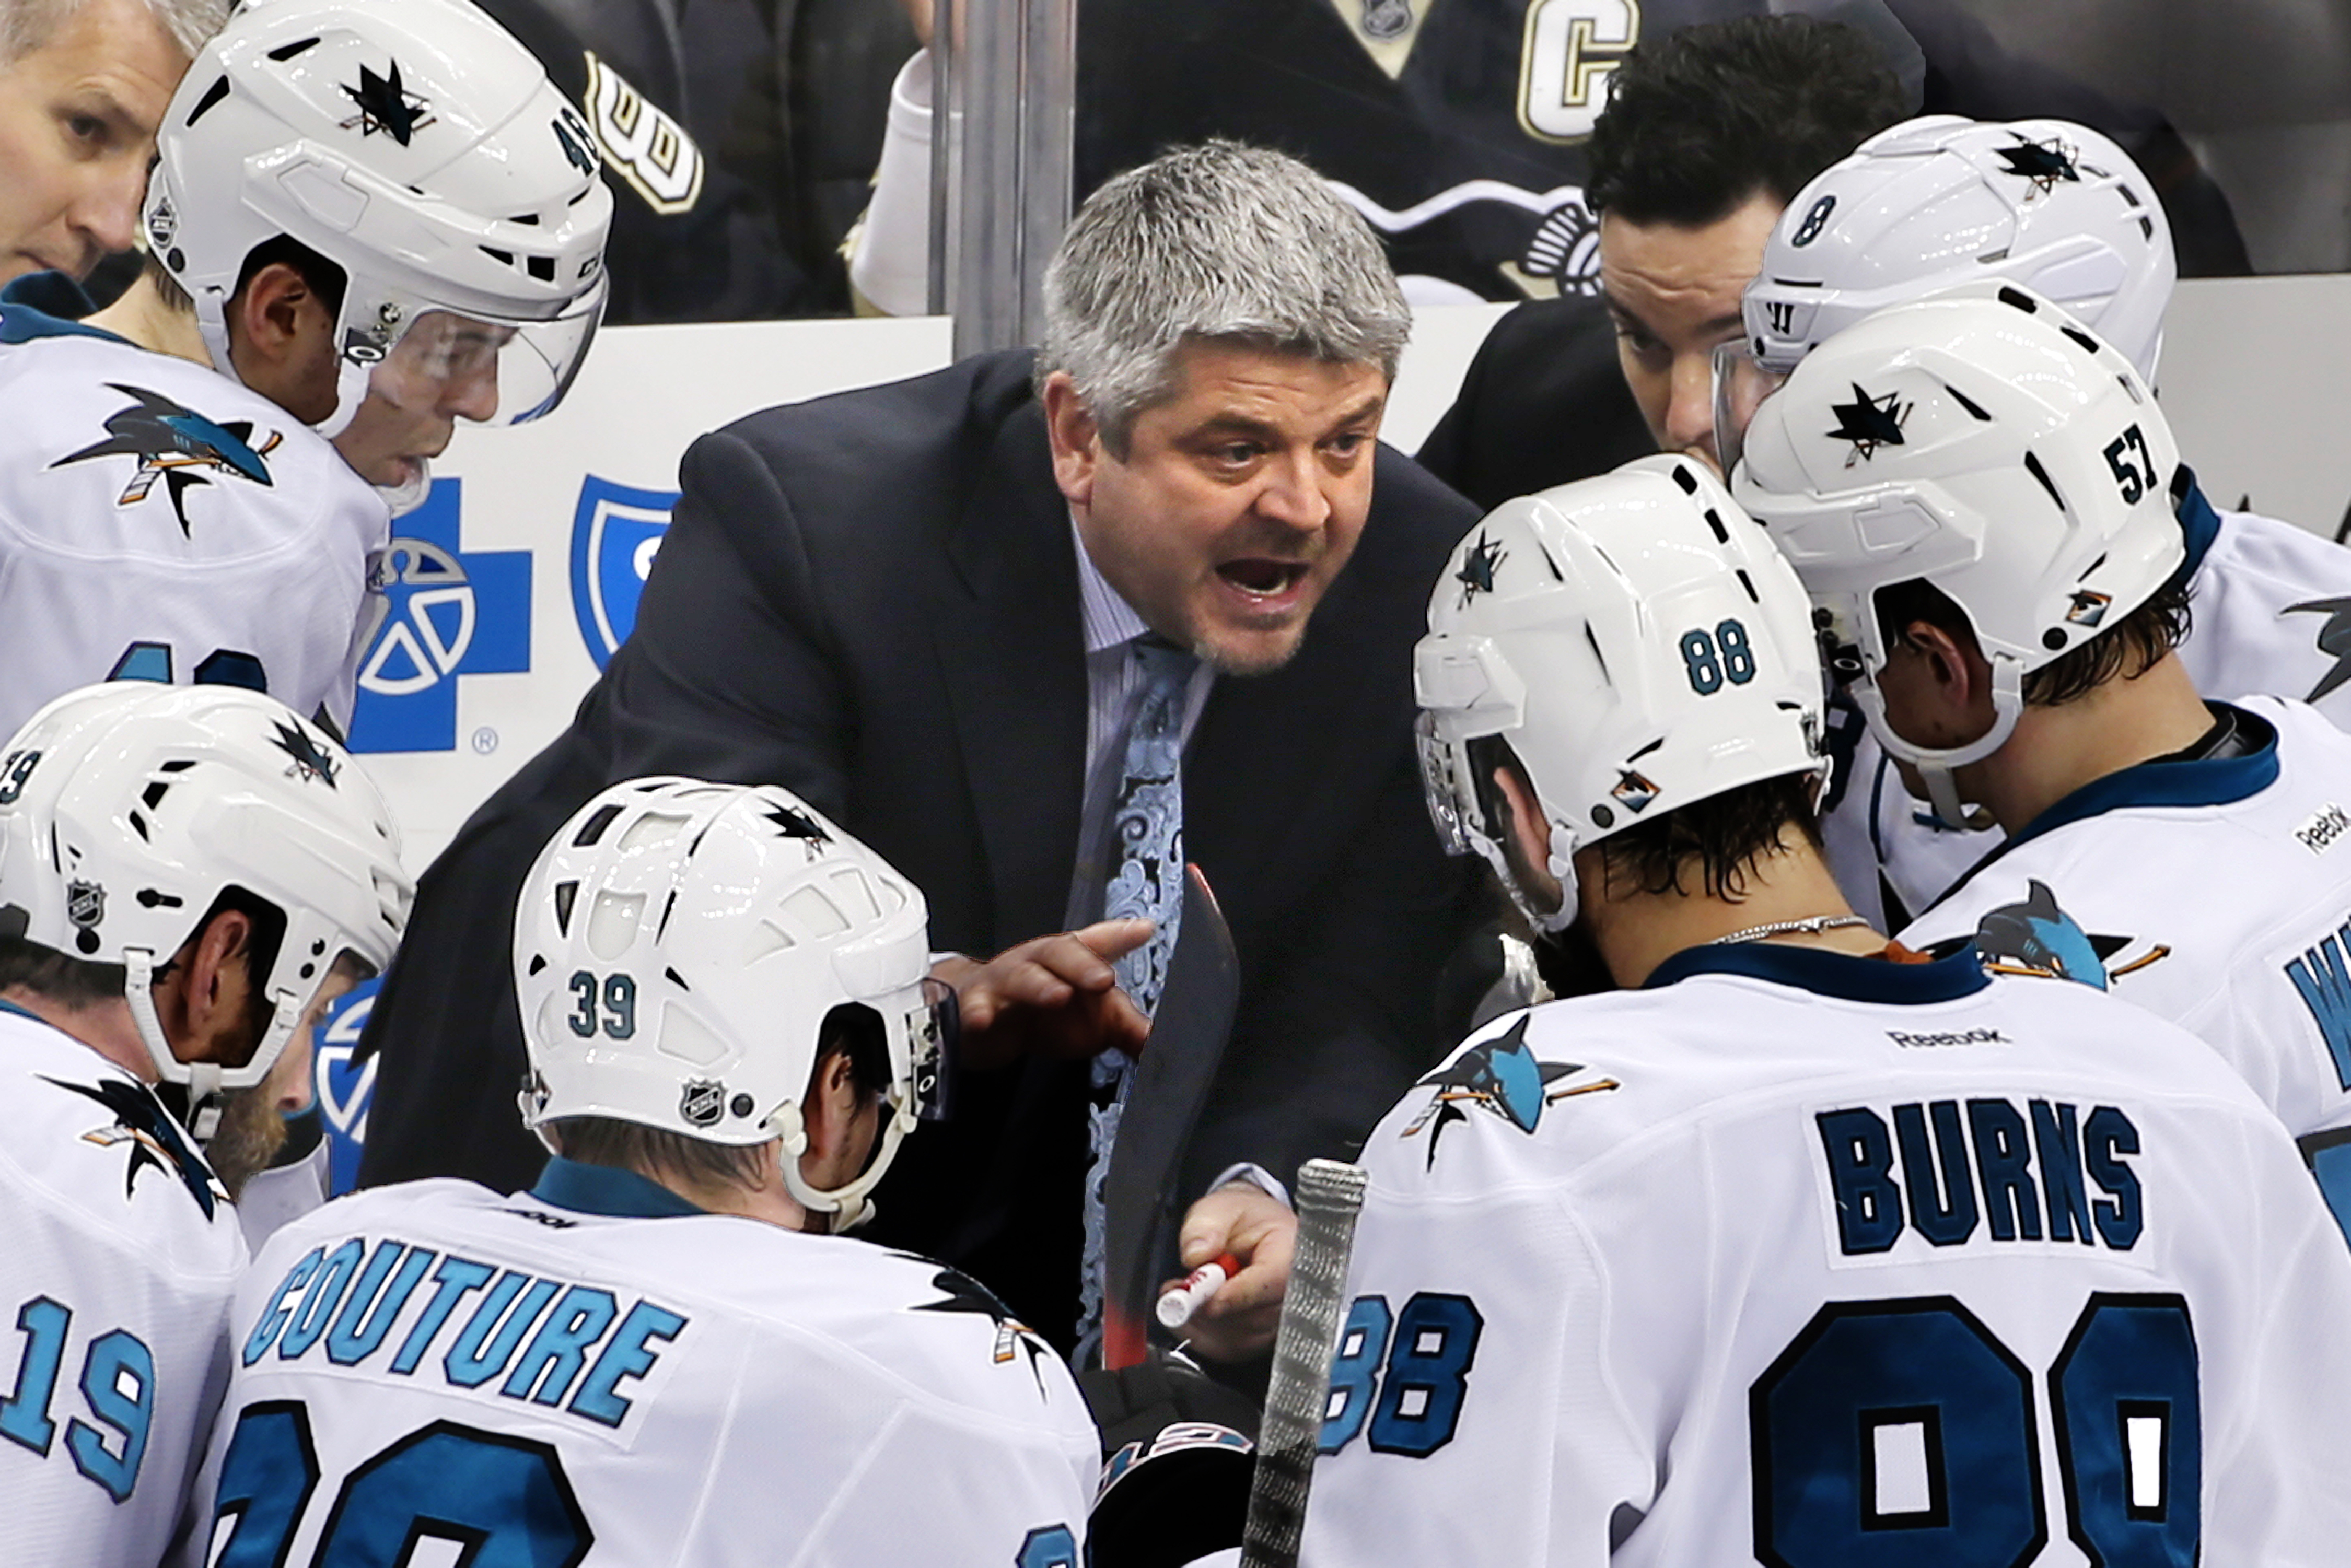 FILE - In this March 29, 2015, file photo, San Jose Sharks head coach Todd McLellan, center, talks to his team during a timeout in the third period of an NHL hockey game against the Pittsburgh Penguins in Pittsburgh.  The Sharks announced Monday, April 20